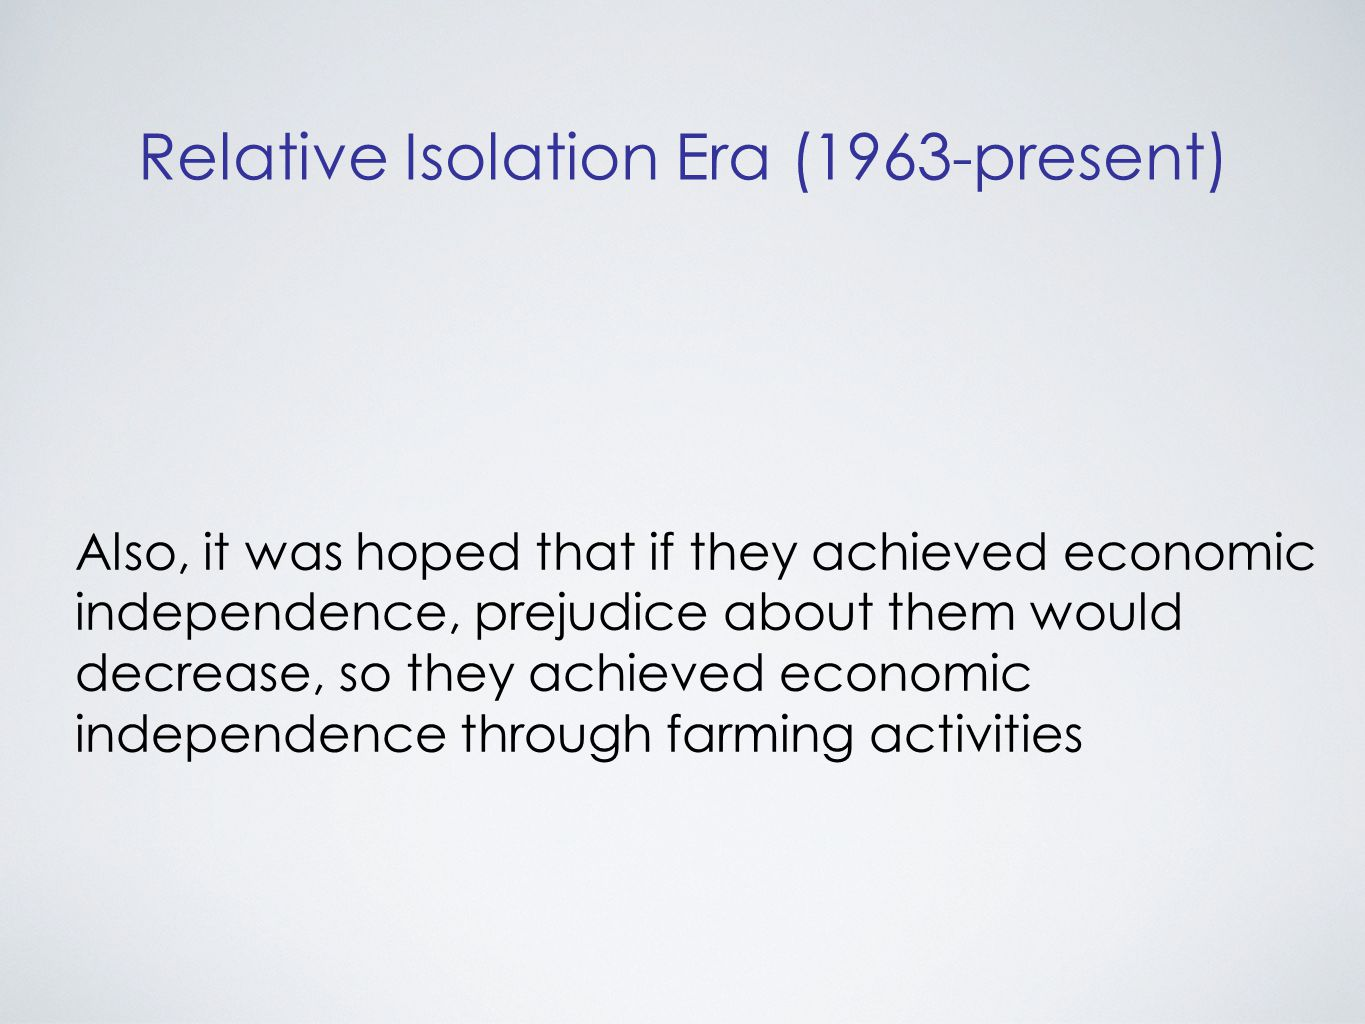 Relative Isolation Era (1963-present) Also, it was hoped that if they achieved economic independence, prejudice about them would decrease, so they achieved economic independence through farming activities